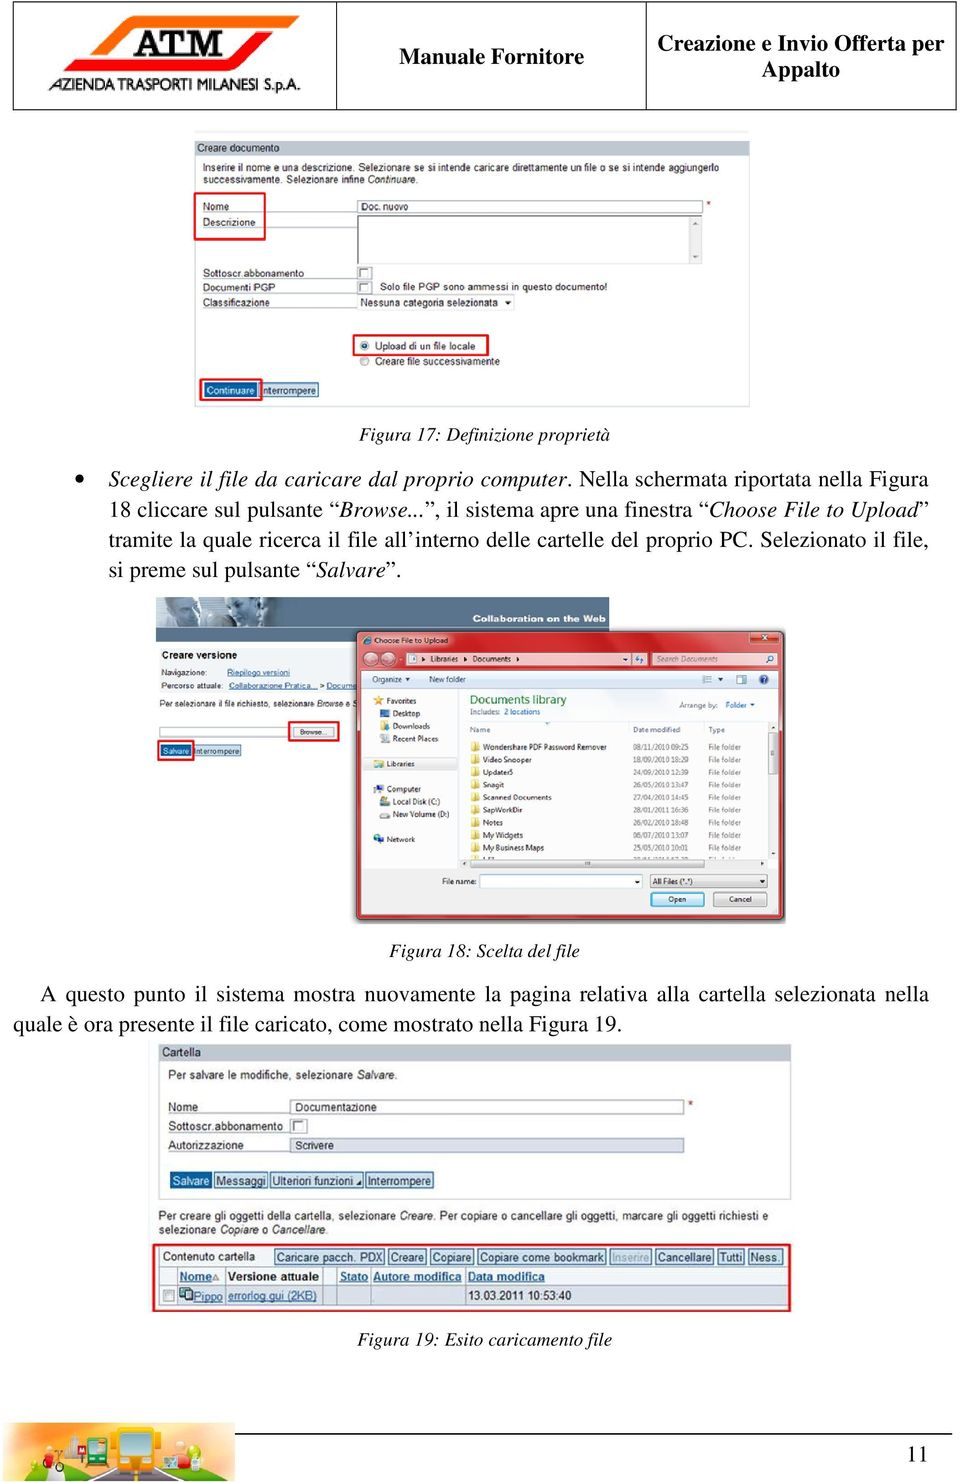 .., il sistema apre una finestra Choose File to Upload tramite la quale ricerca il file all interno delle cartelle del proprio PC.